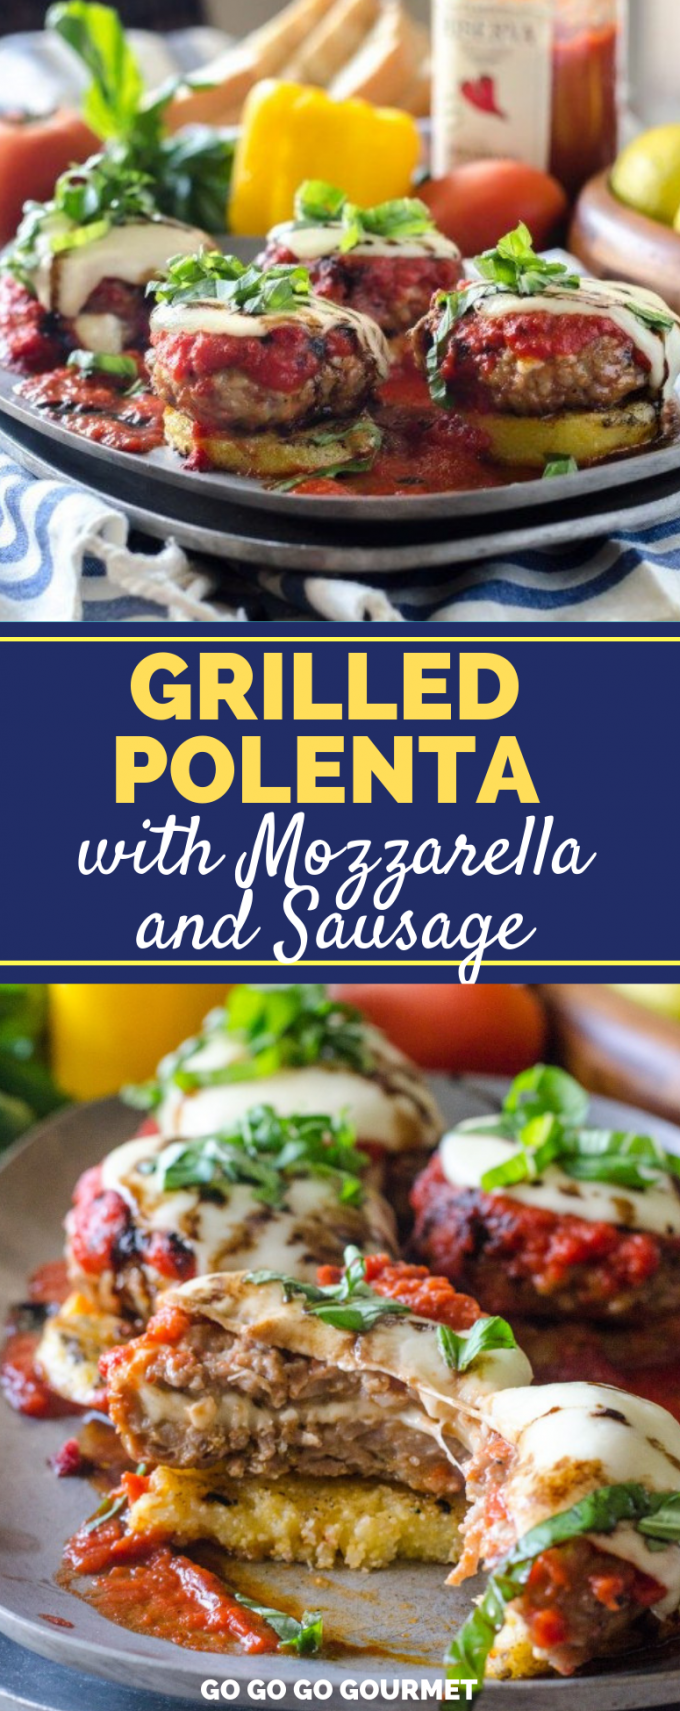 These Grilled Polenta cakes are exactly what you need to make this summer! Whether served as appetizers or dinners, this is one of the best polenta recipes ever! #gogogogourmet #grilledpolenta #griledpolentarecipe #bestgrilledpolentarecipe via @gogogogourmet